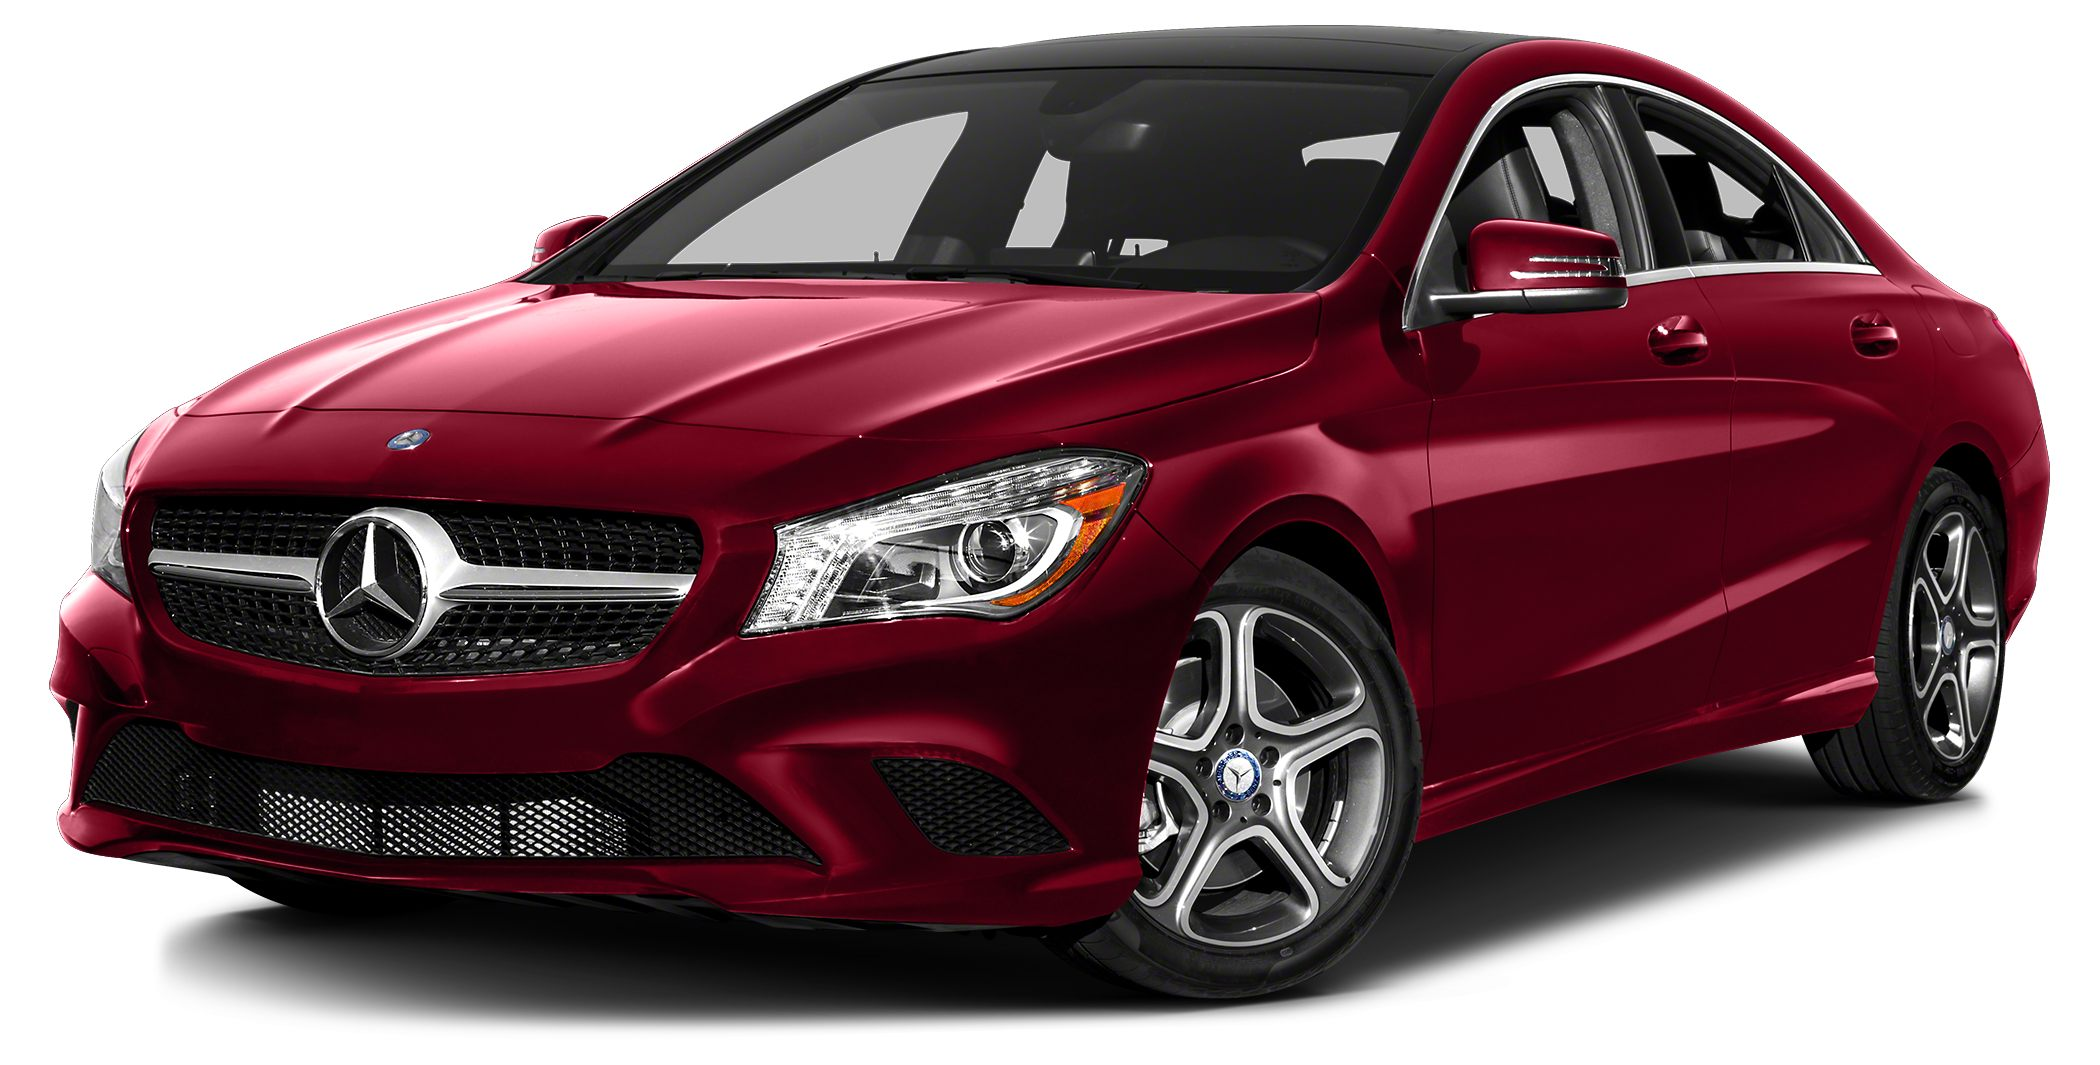 2015 MERCEDES CLA-Class CLA250 This 2015 CLA250 is a low mileage MBUSA employee lease unit now up